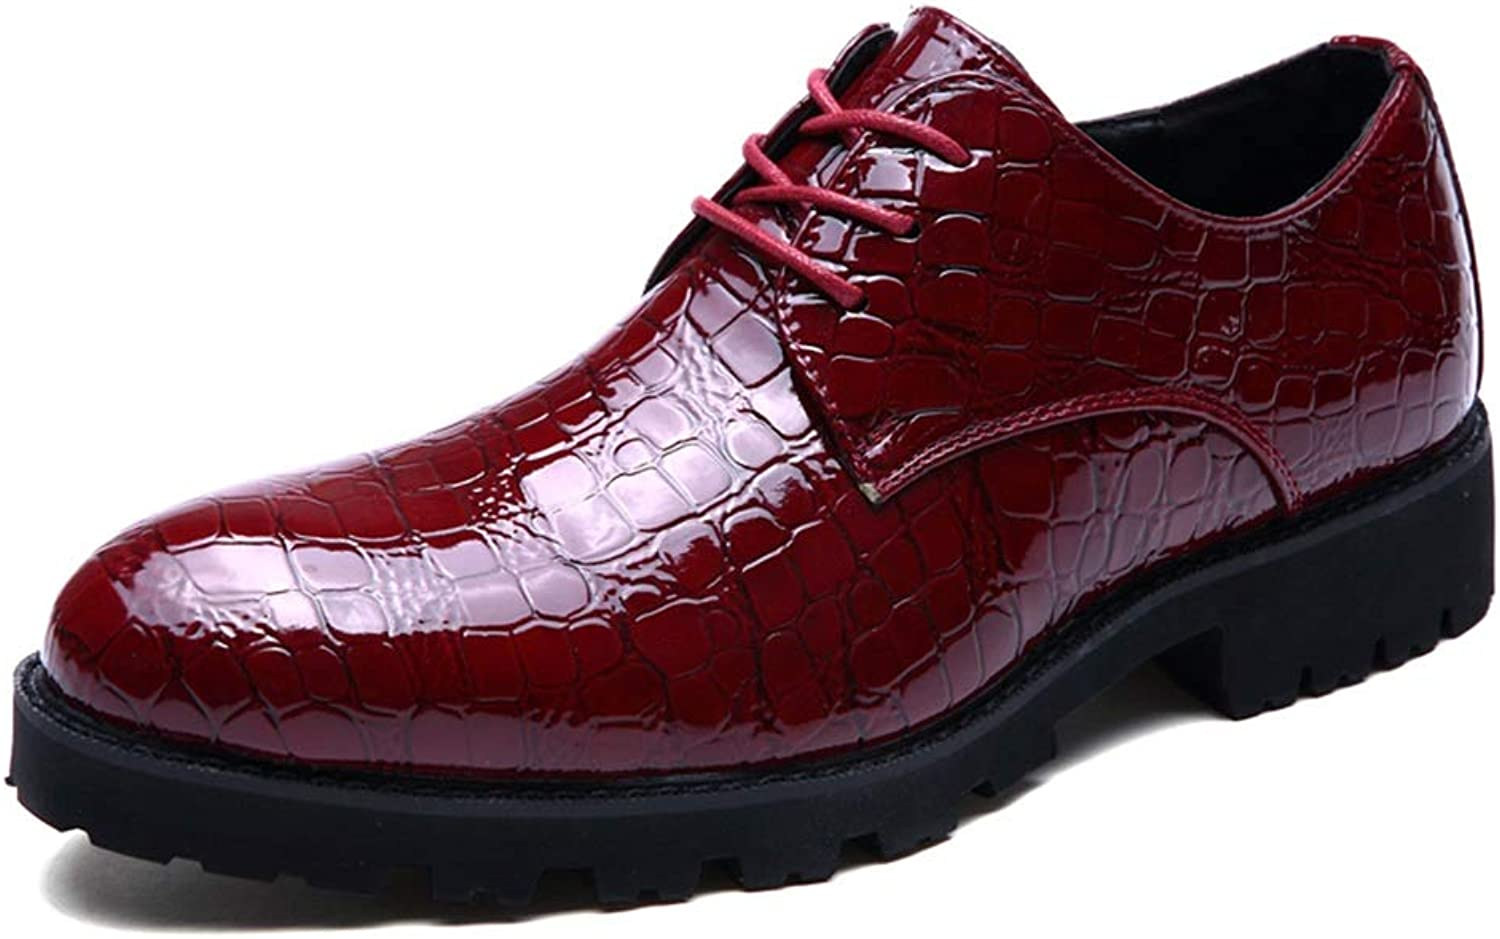 CHENDX shoes, Men's Fashion Low Top Lace Up Oxford Casual Comfort Classic Plain Patent Leather Waterproof Leisure shoes (color   Red, Size   6.5 UK)